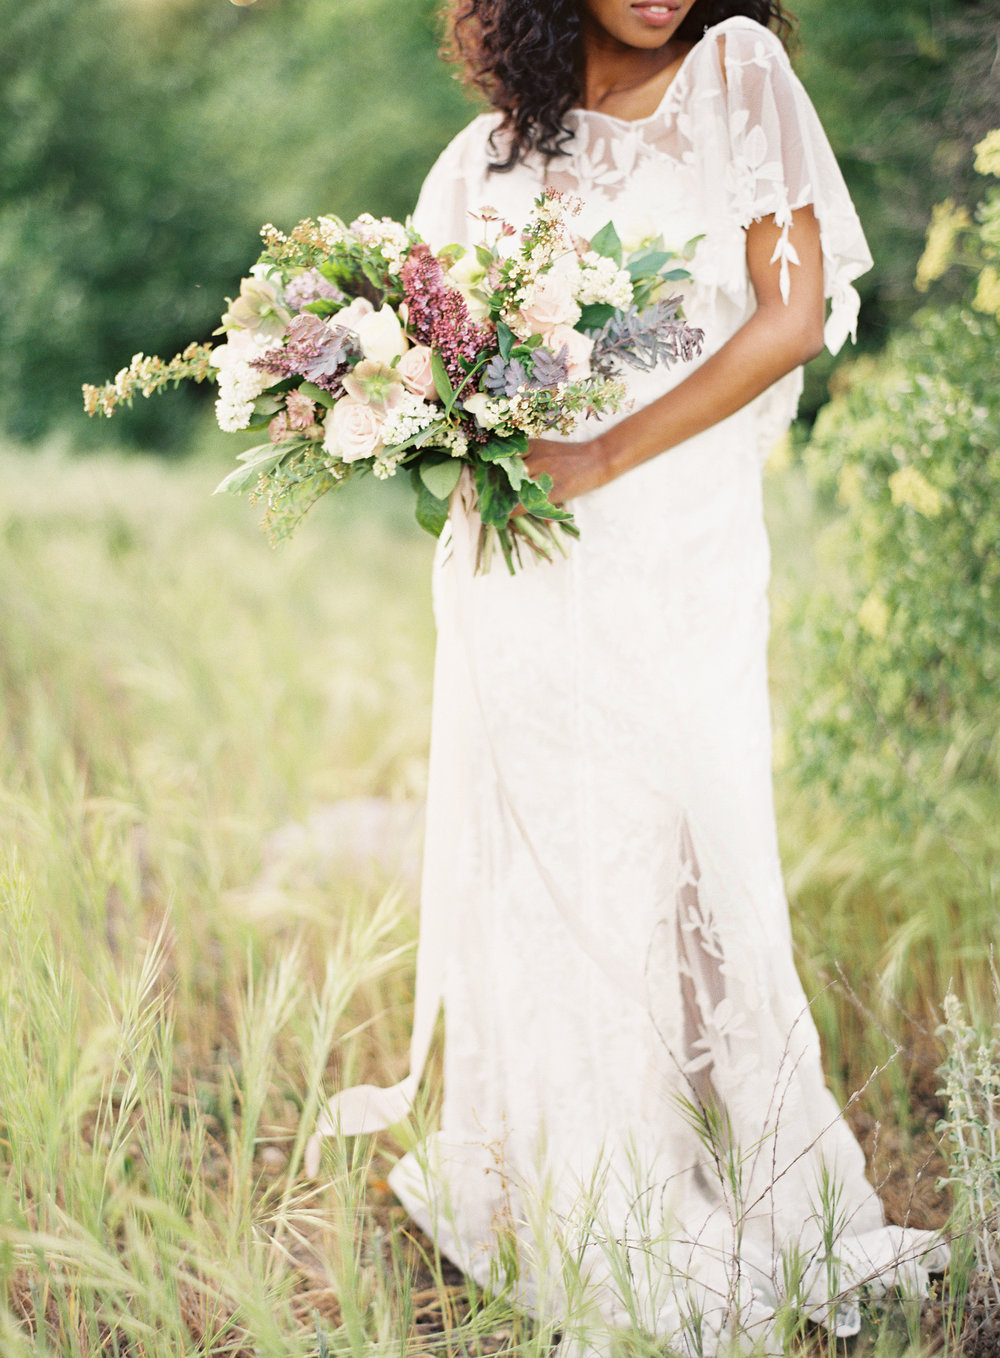 3-Photo_by_Christine_Donee-Bouquet_by_Ellamah.jpg